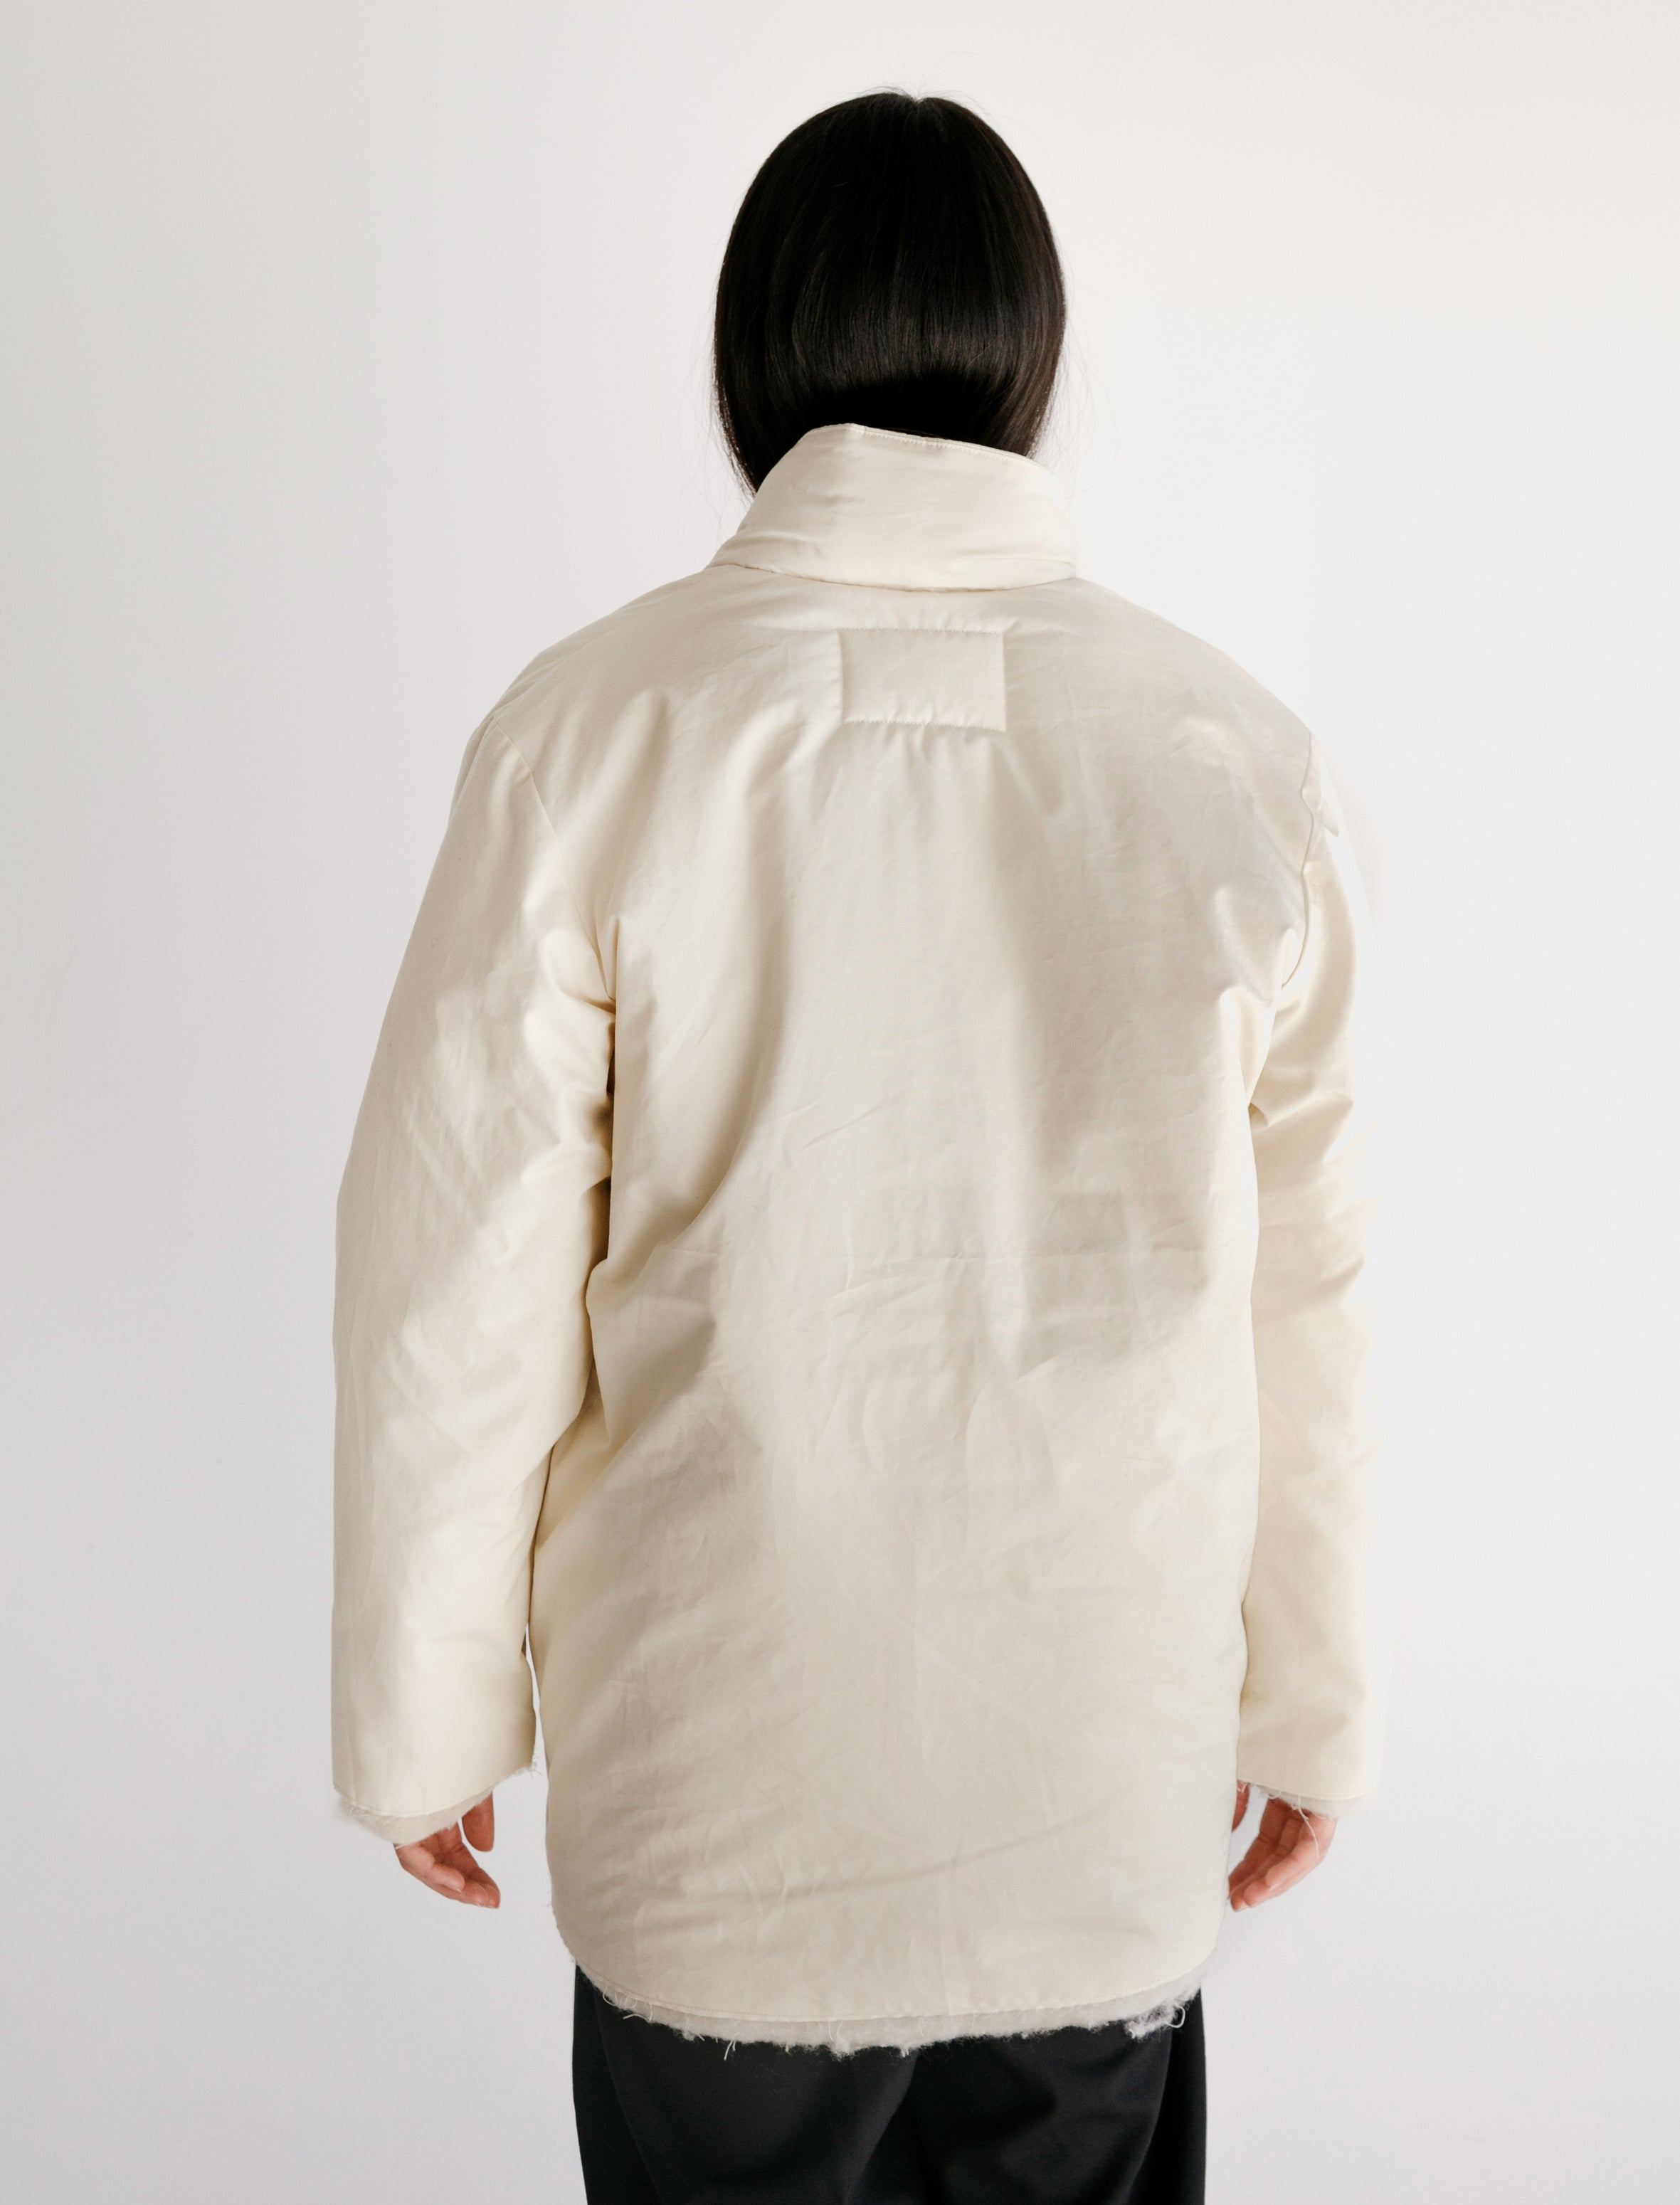 Camiel Fortgens Padded Square Jacket Waxed Cotton White